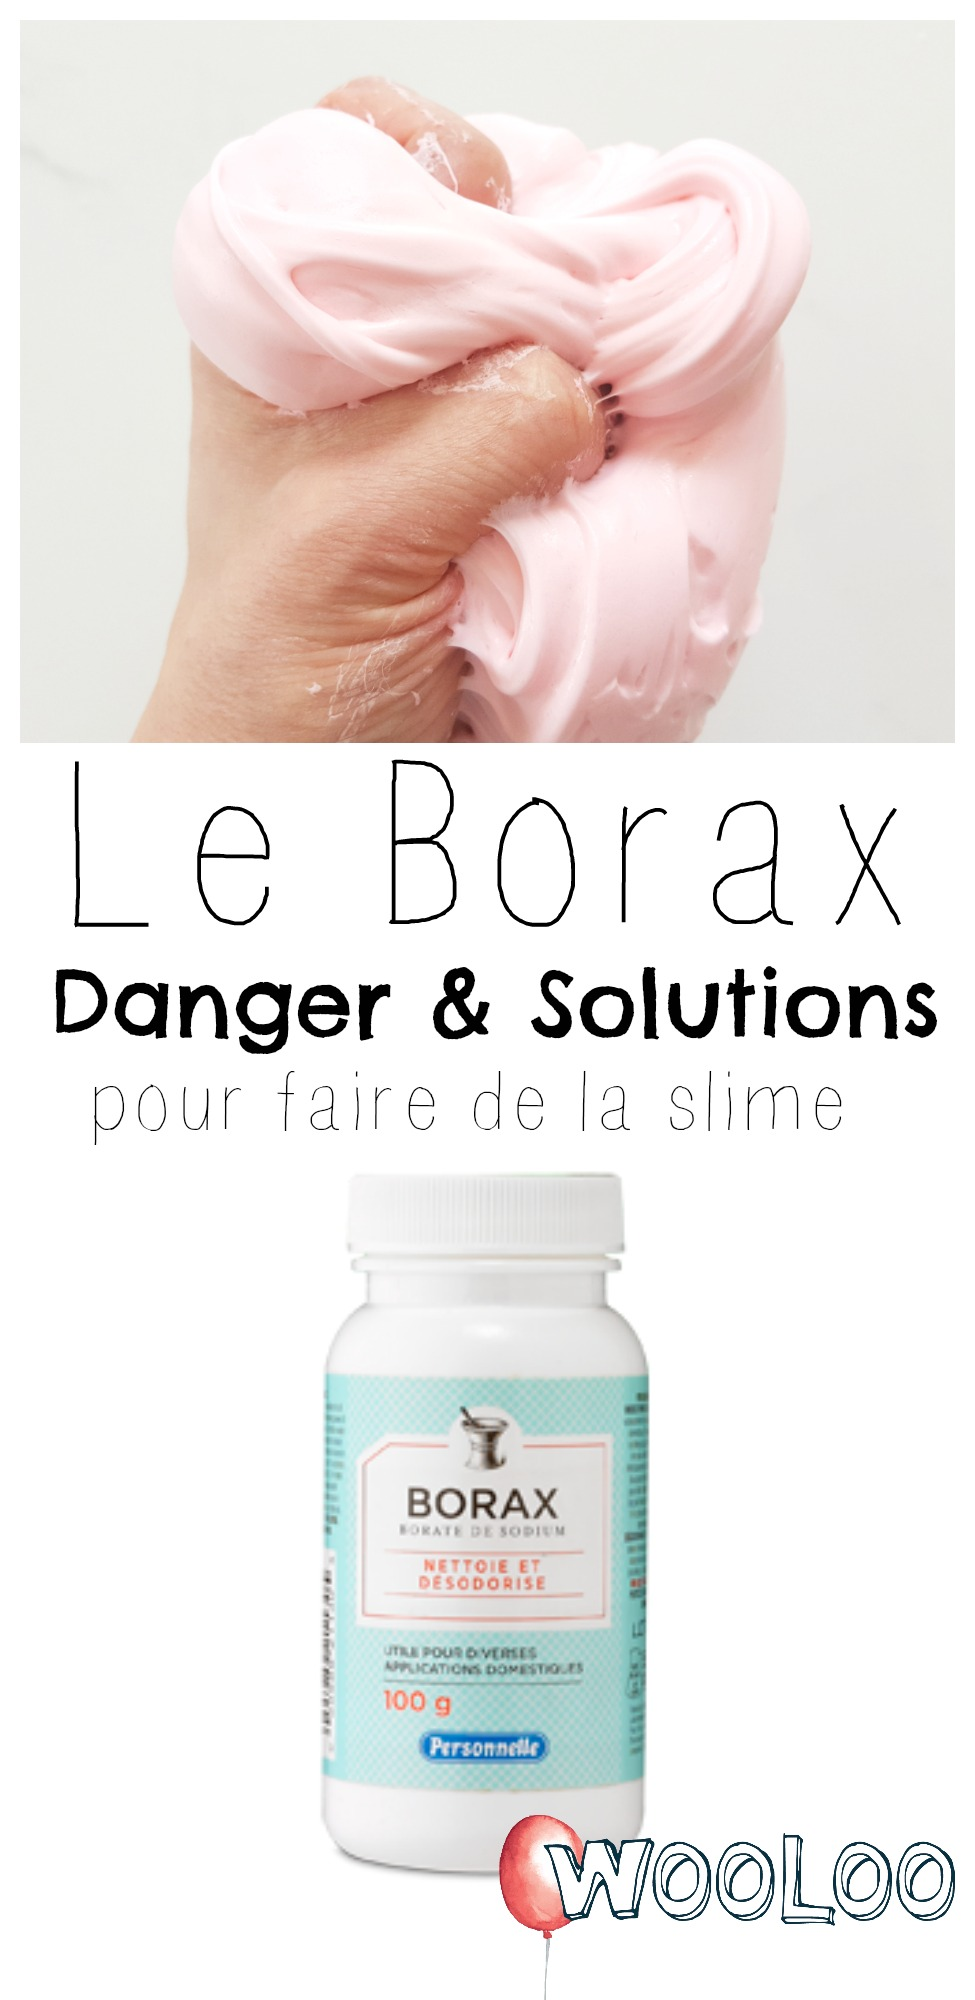 Slime, Borax, danger et solutions wooloo